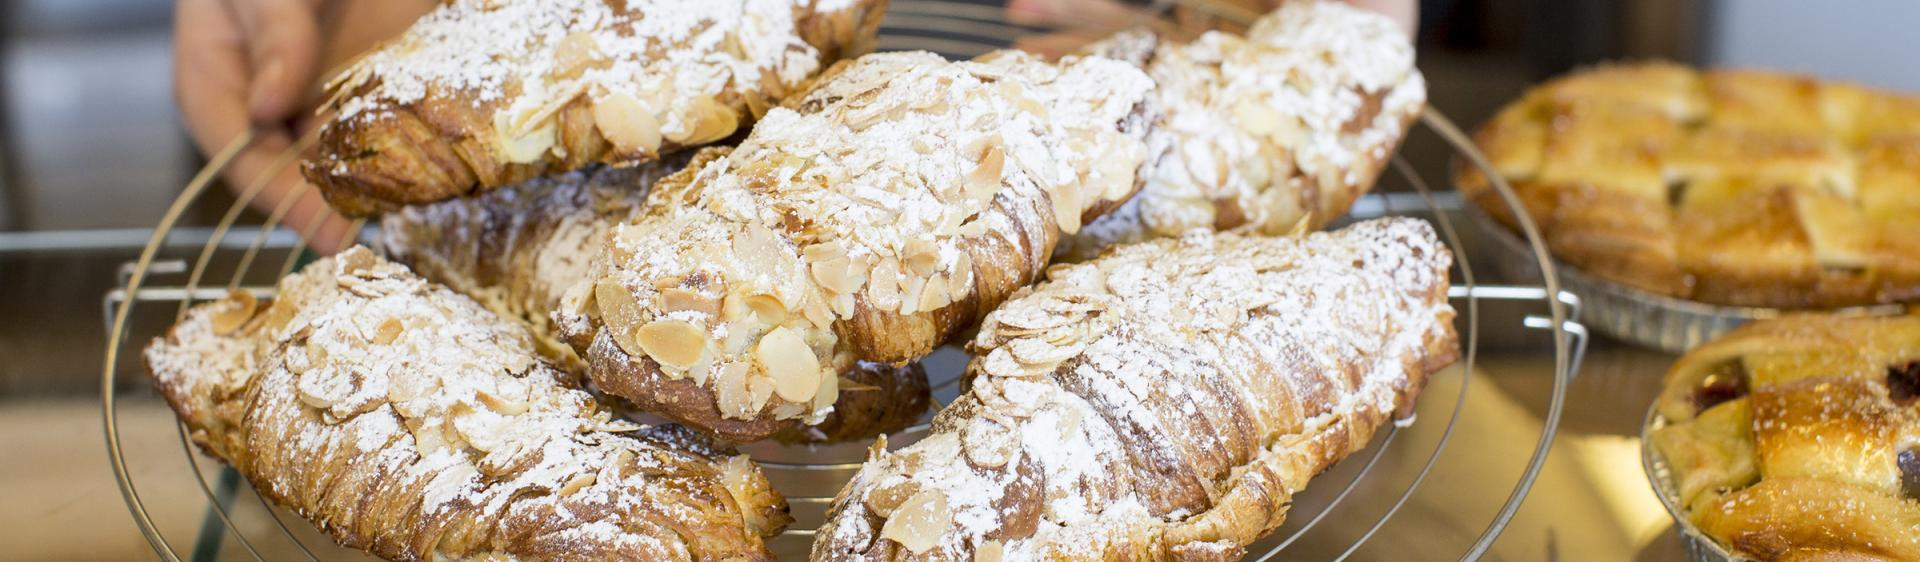 Pastries - Racine Bakery, Orange